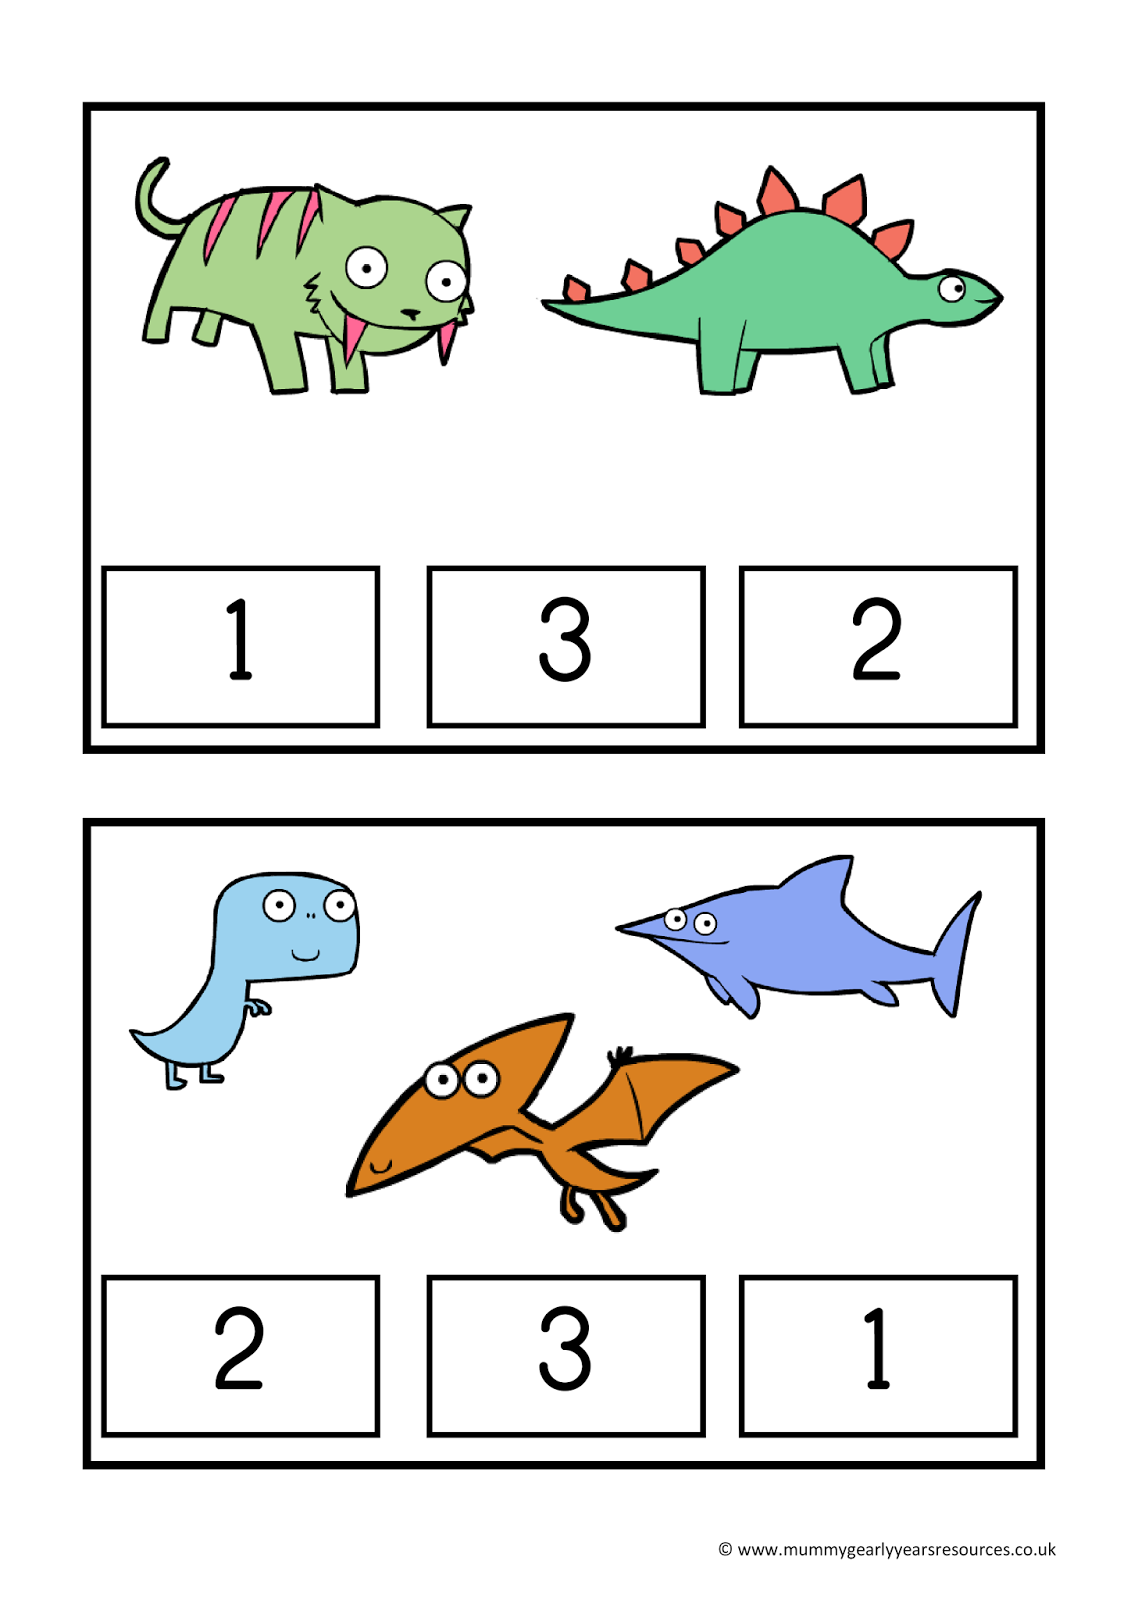 Mummy G Early Years Resources Dinosaur Count And Clip